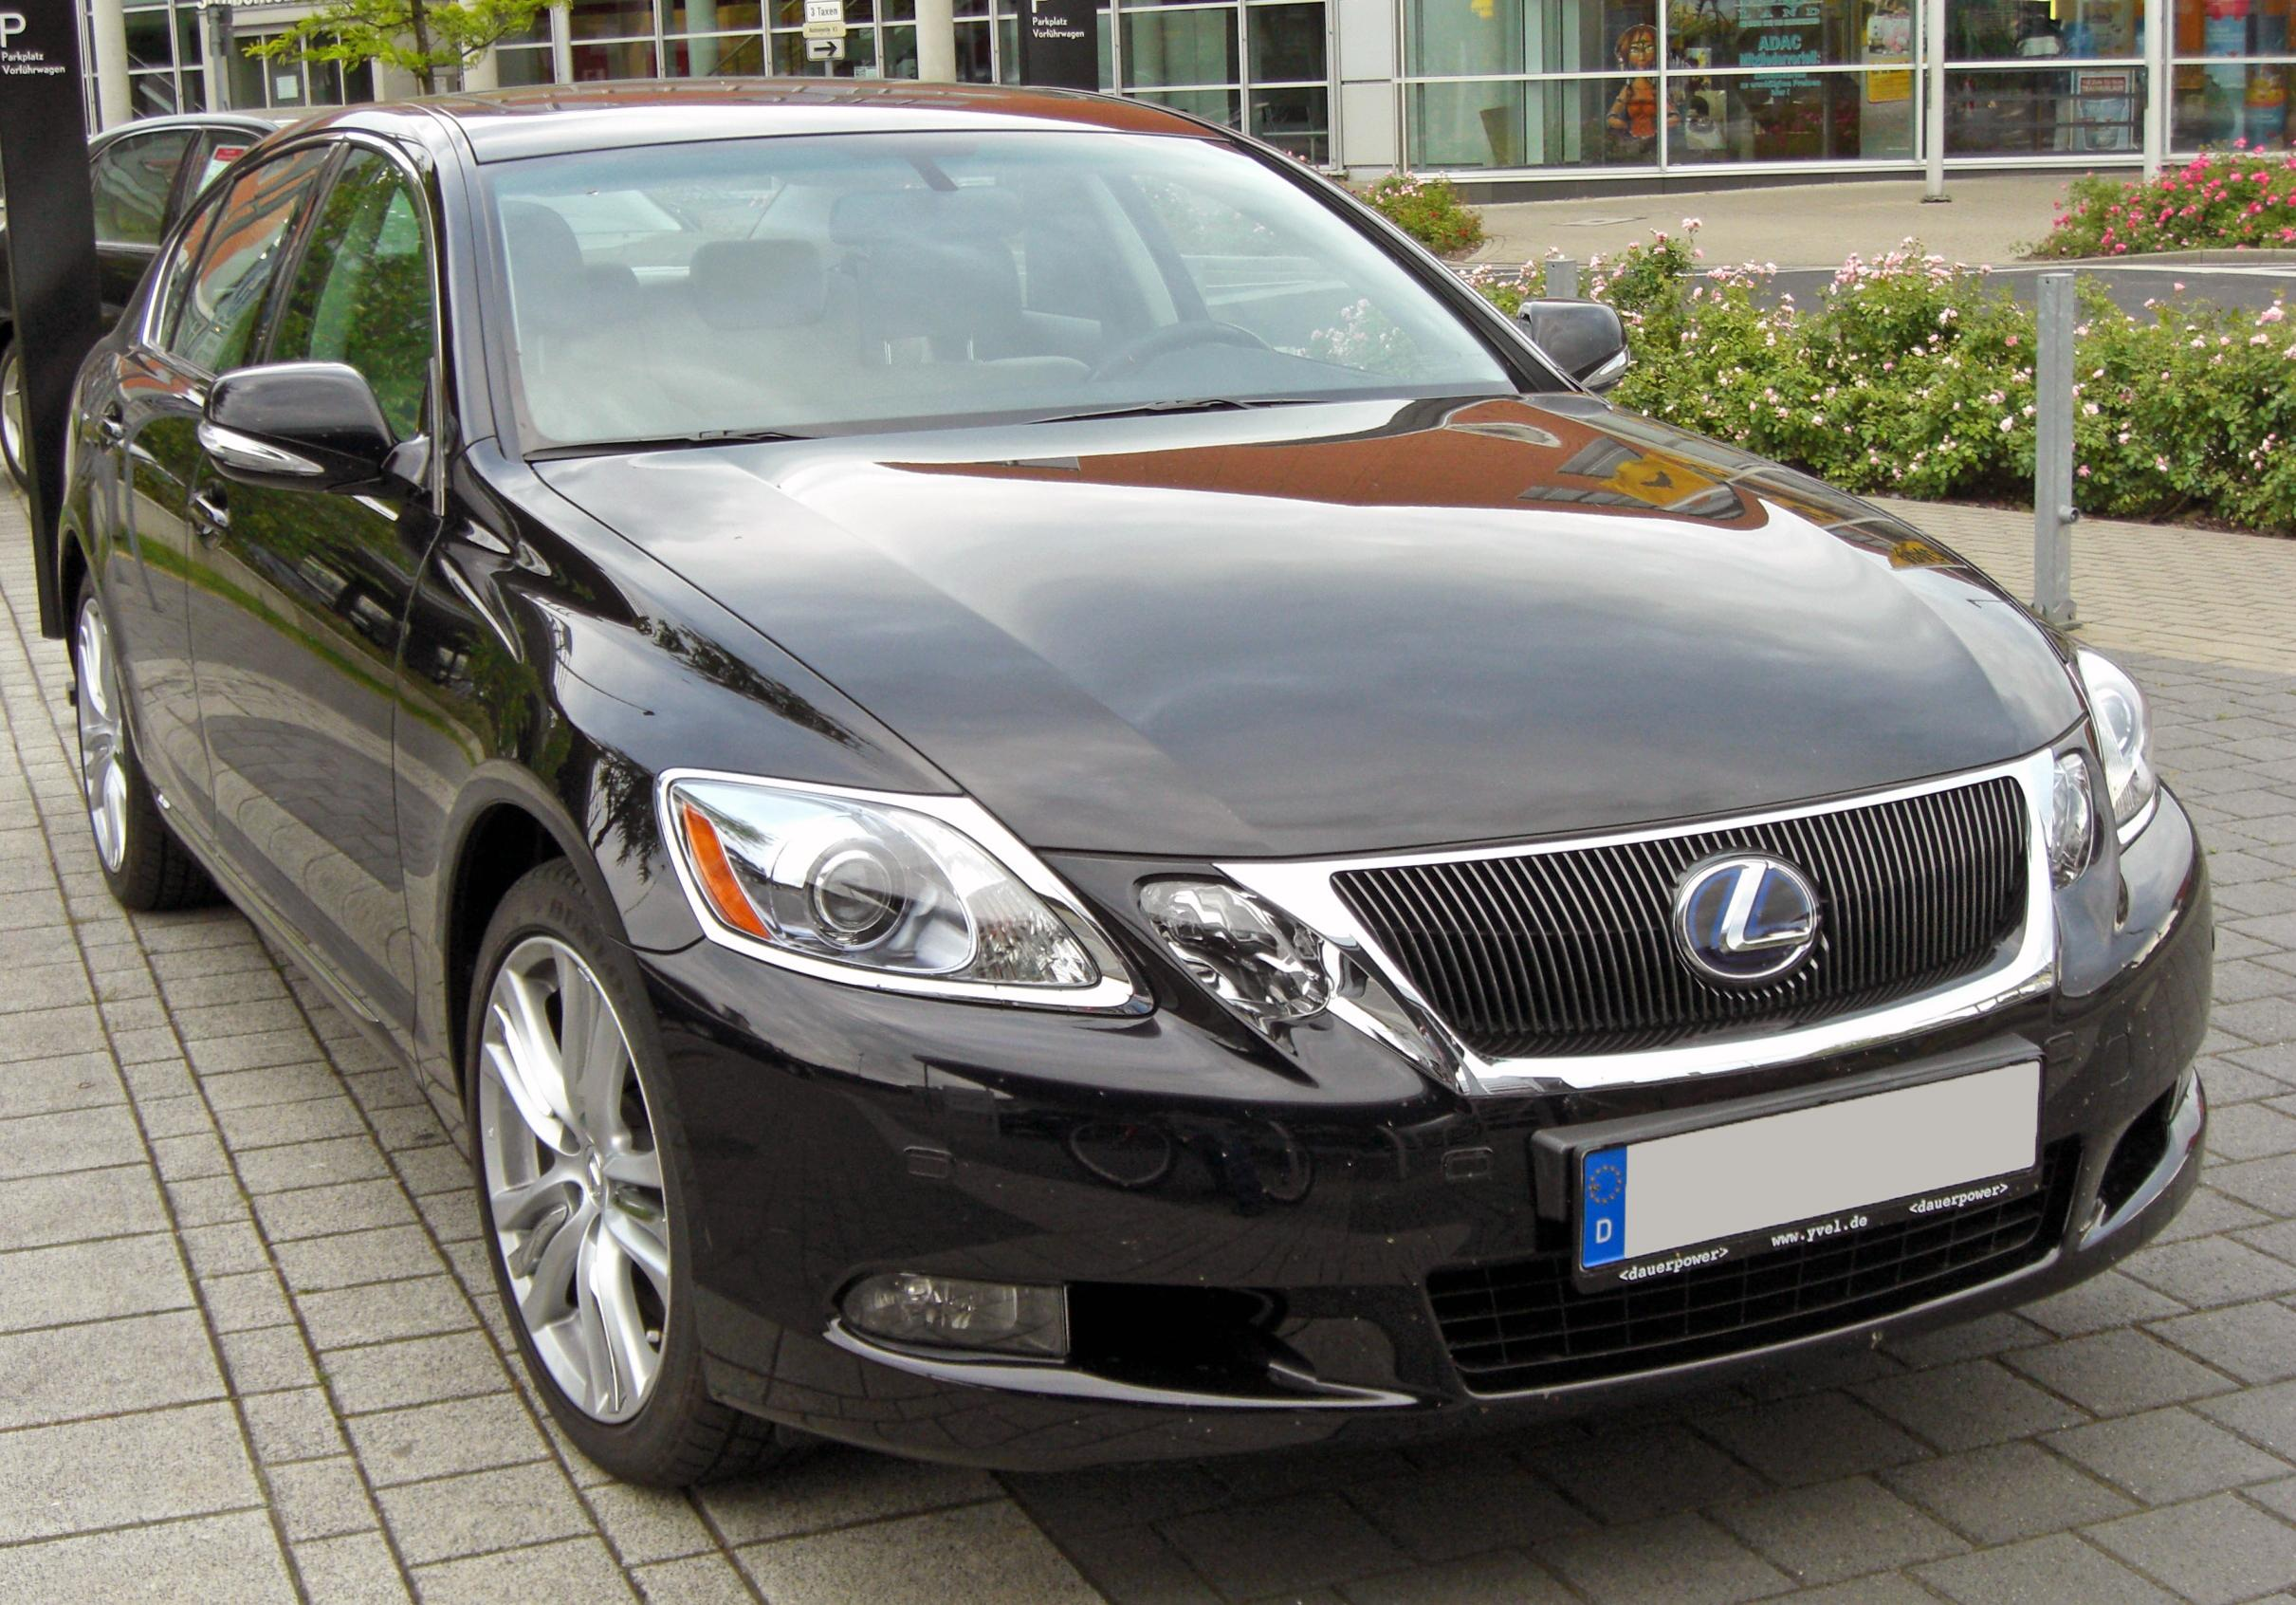 https://upload.wikimedia.org/wikipedia/commons/3/3a/Lexus_GS_450h_Facelift_20090603_front.JPG